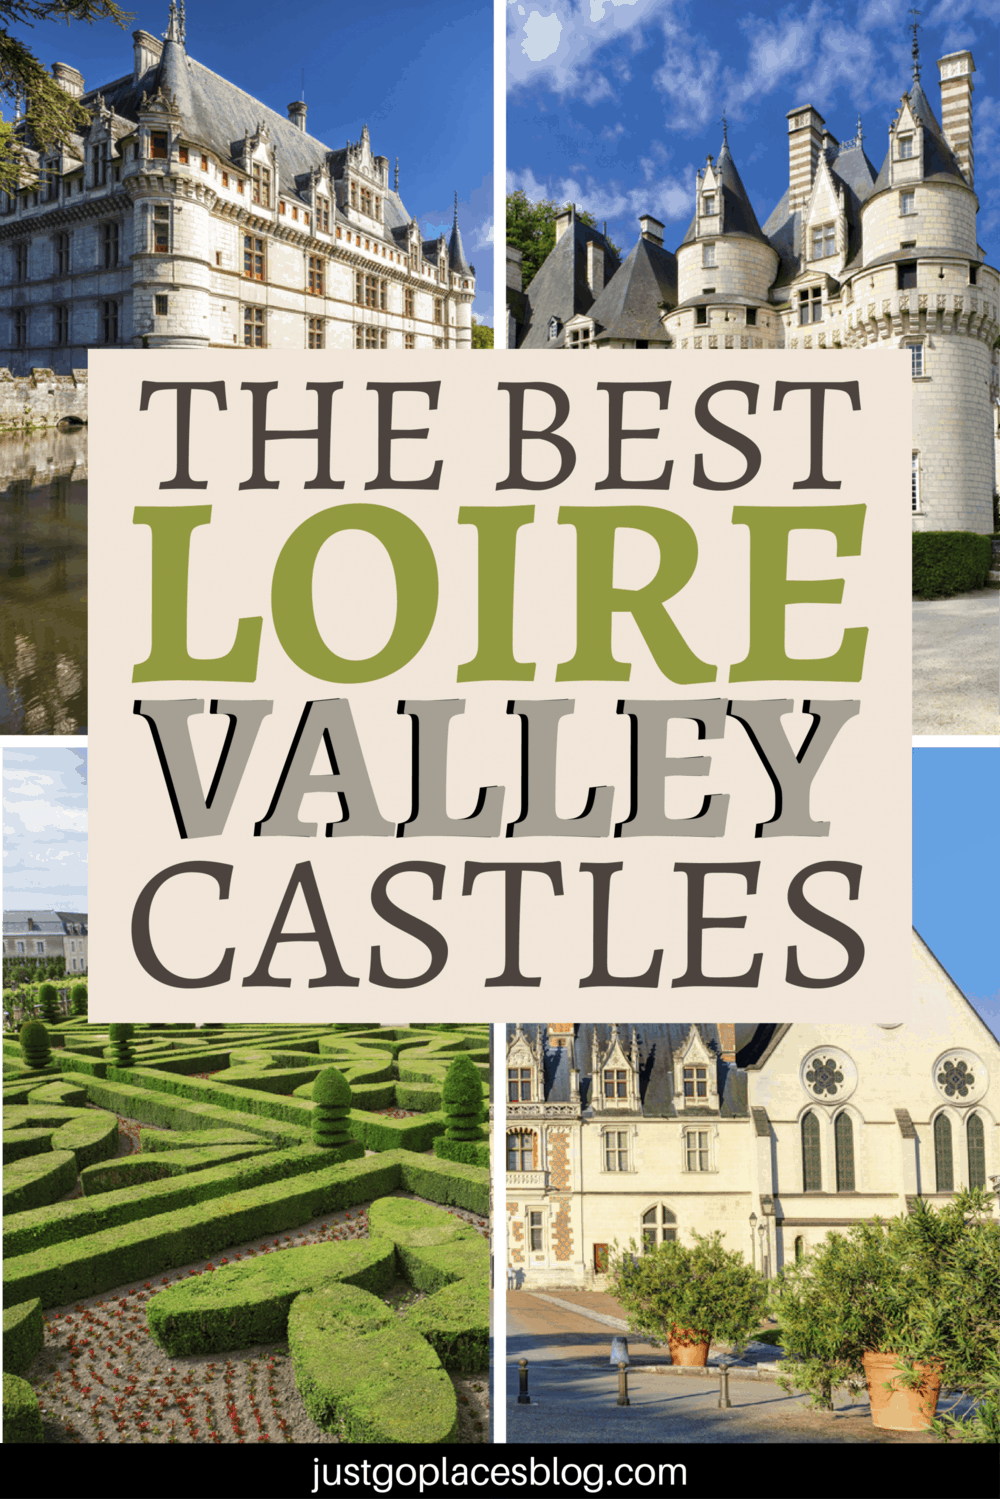 The Best Loire Valley Castles